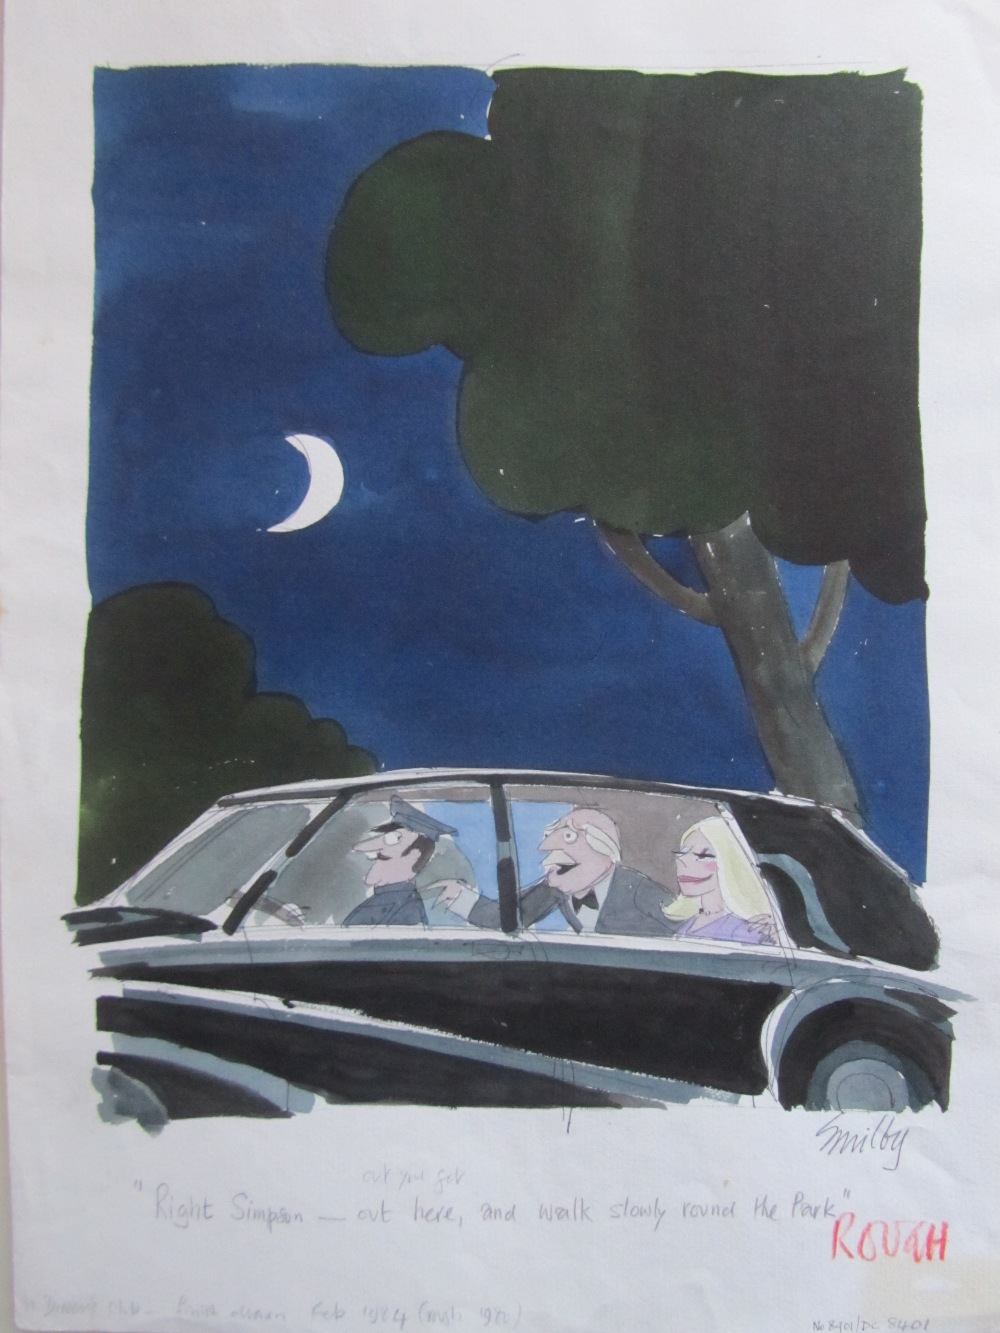 Lot 29 - Smilby, Francis Wilford-Smith 'Right Simpson - out you get and walk slowly round the park'